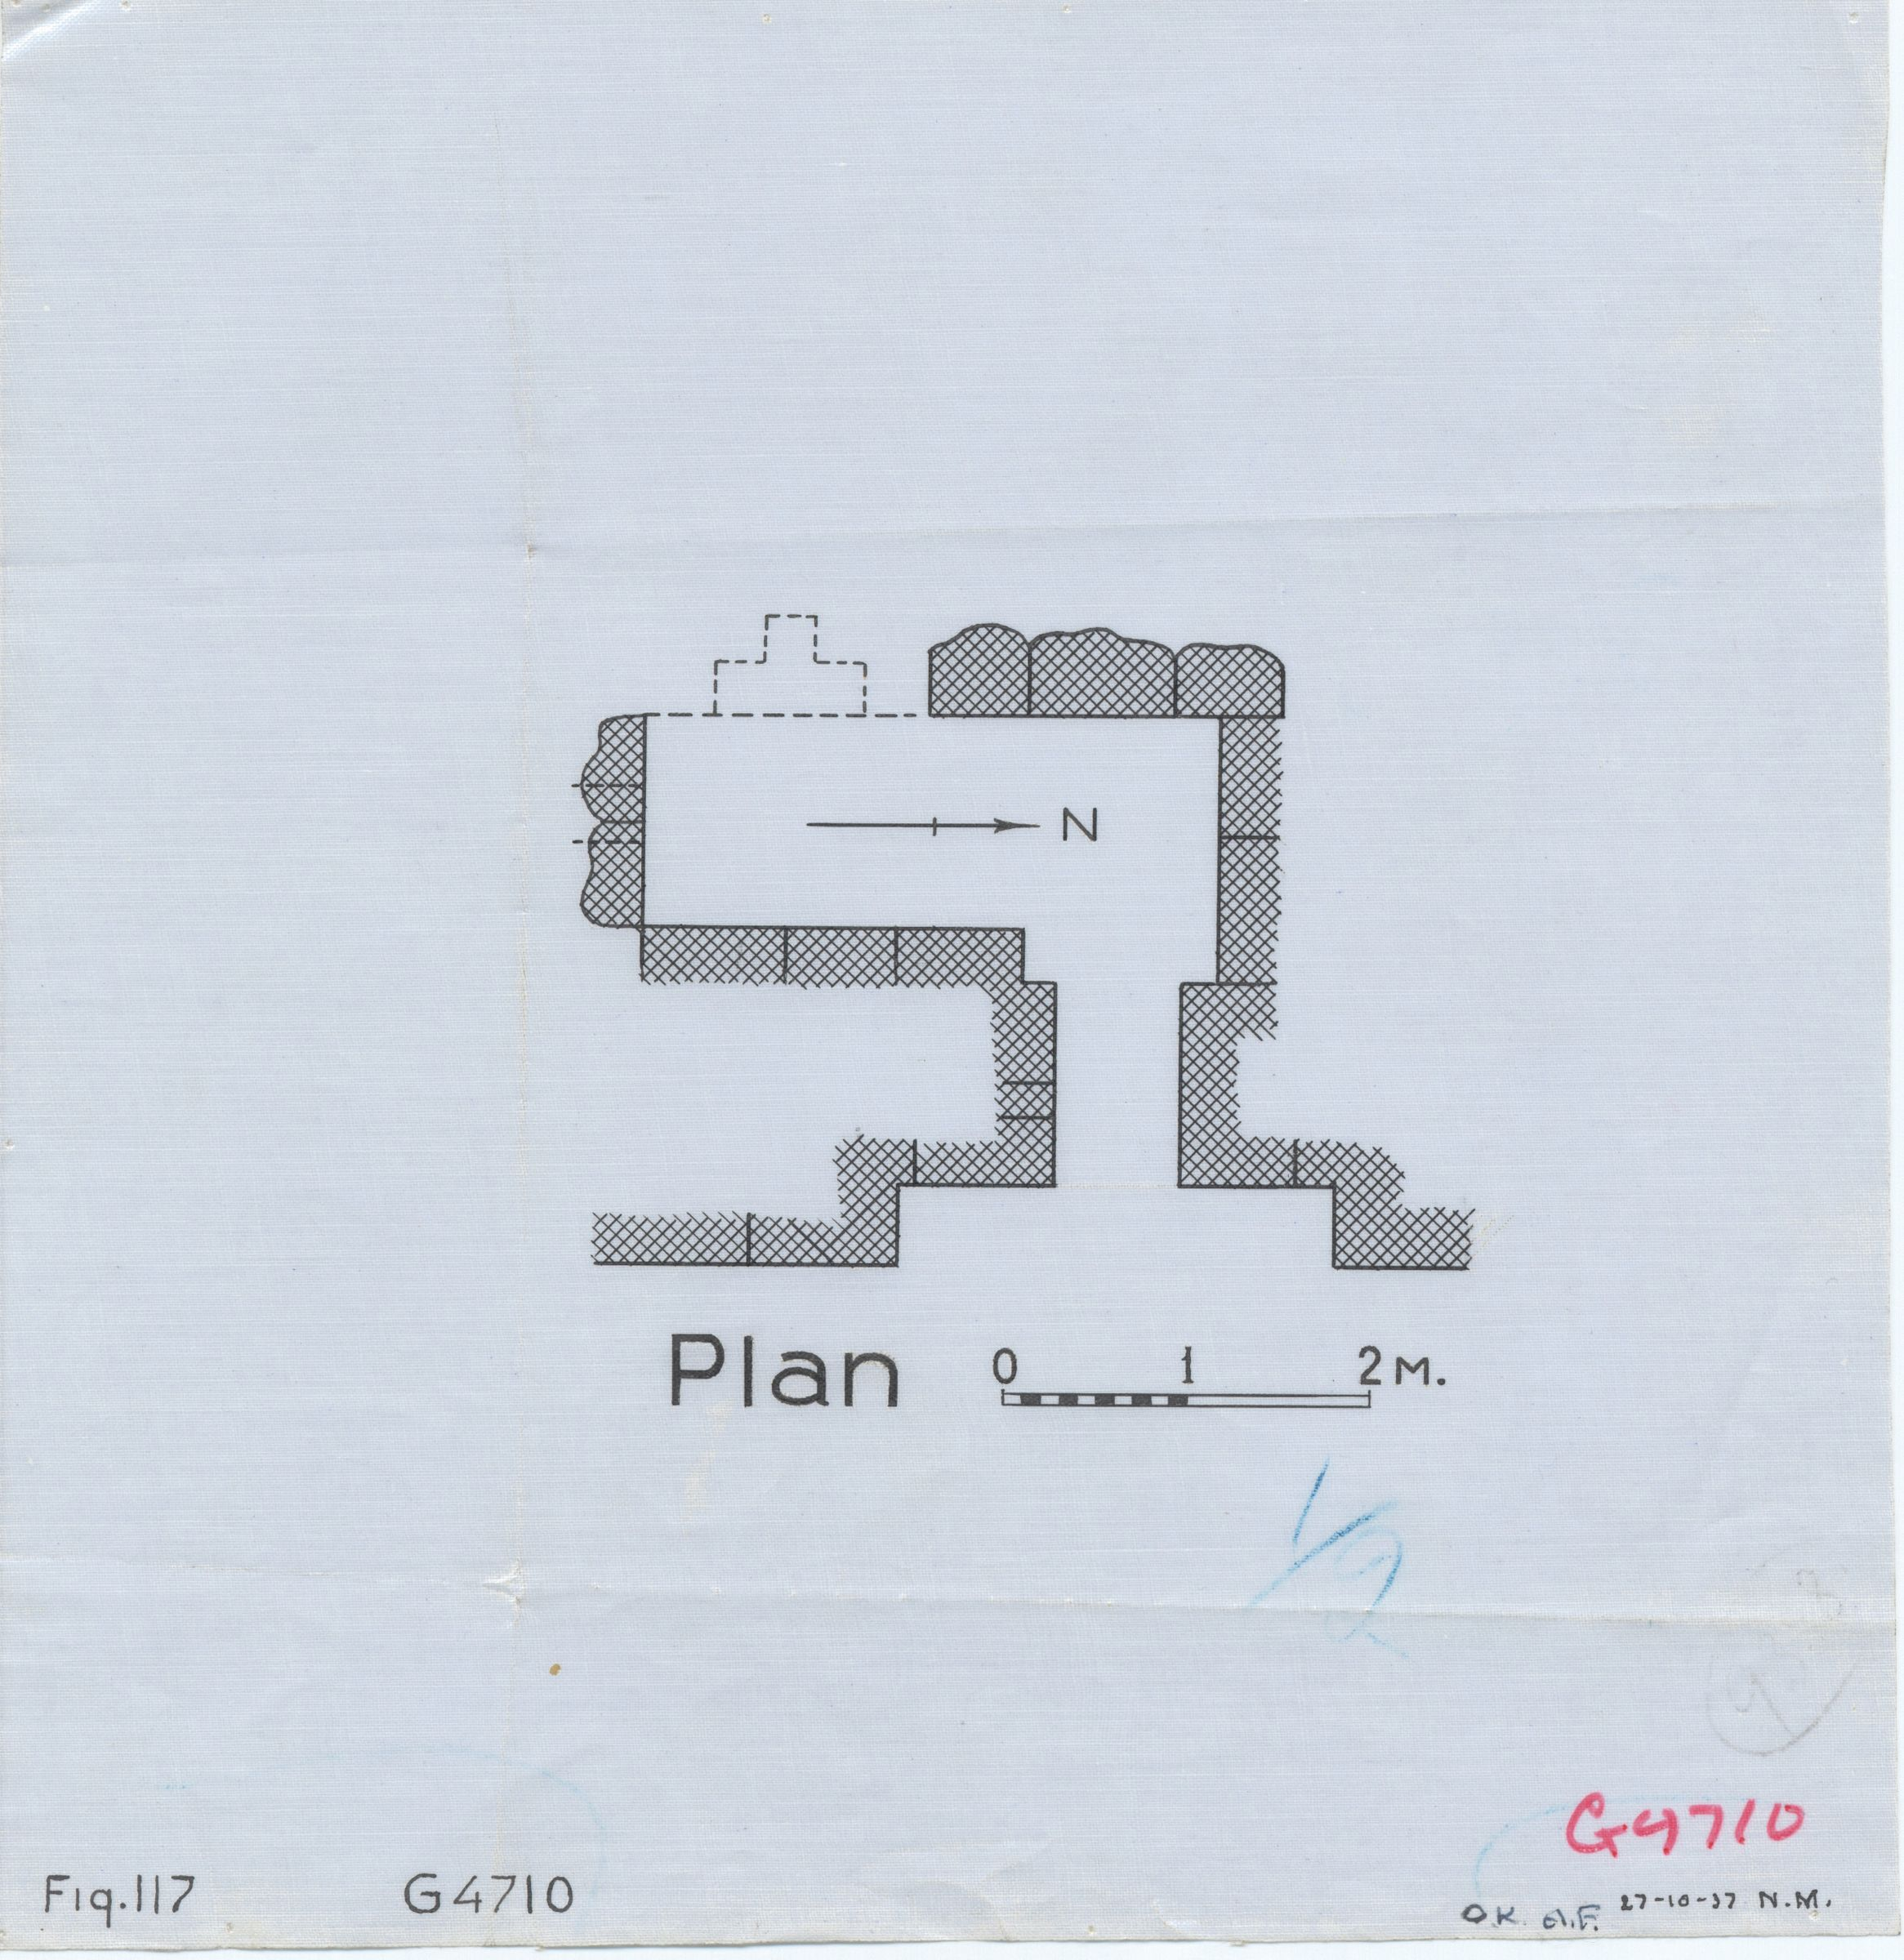 Maps and plans: G 4710, Plan of chapel